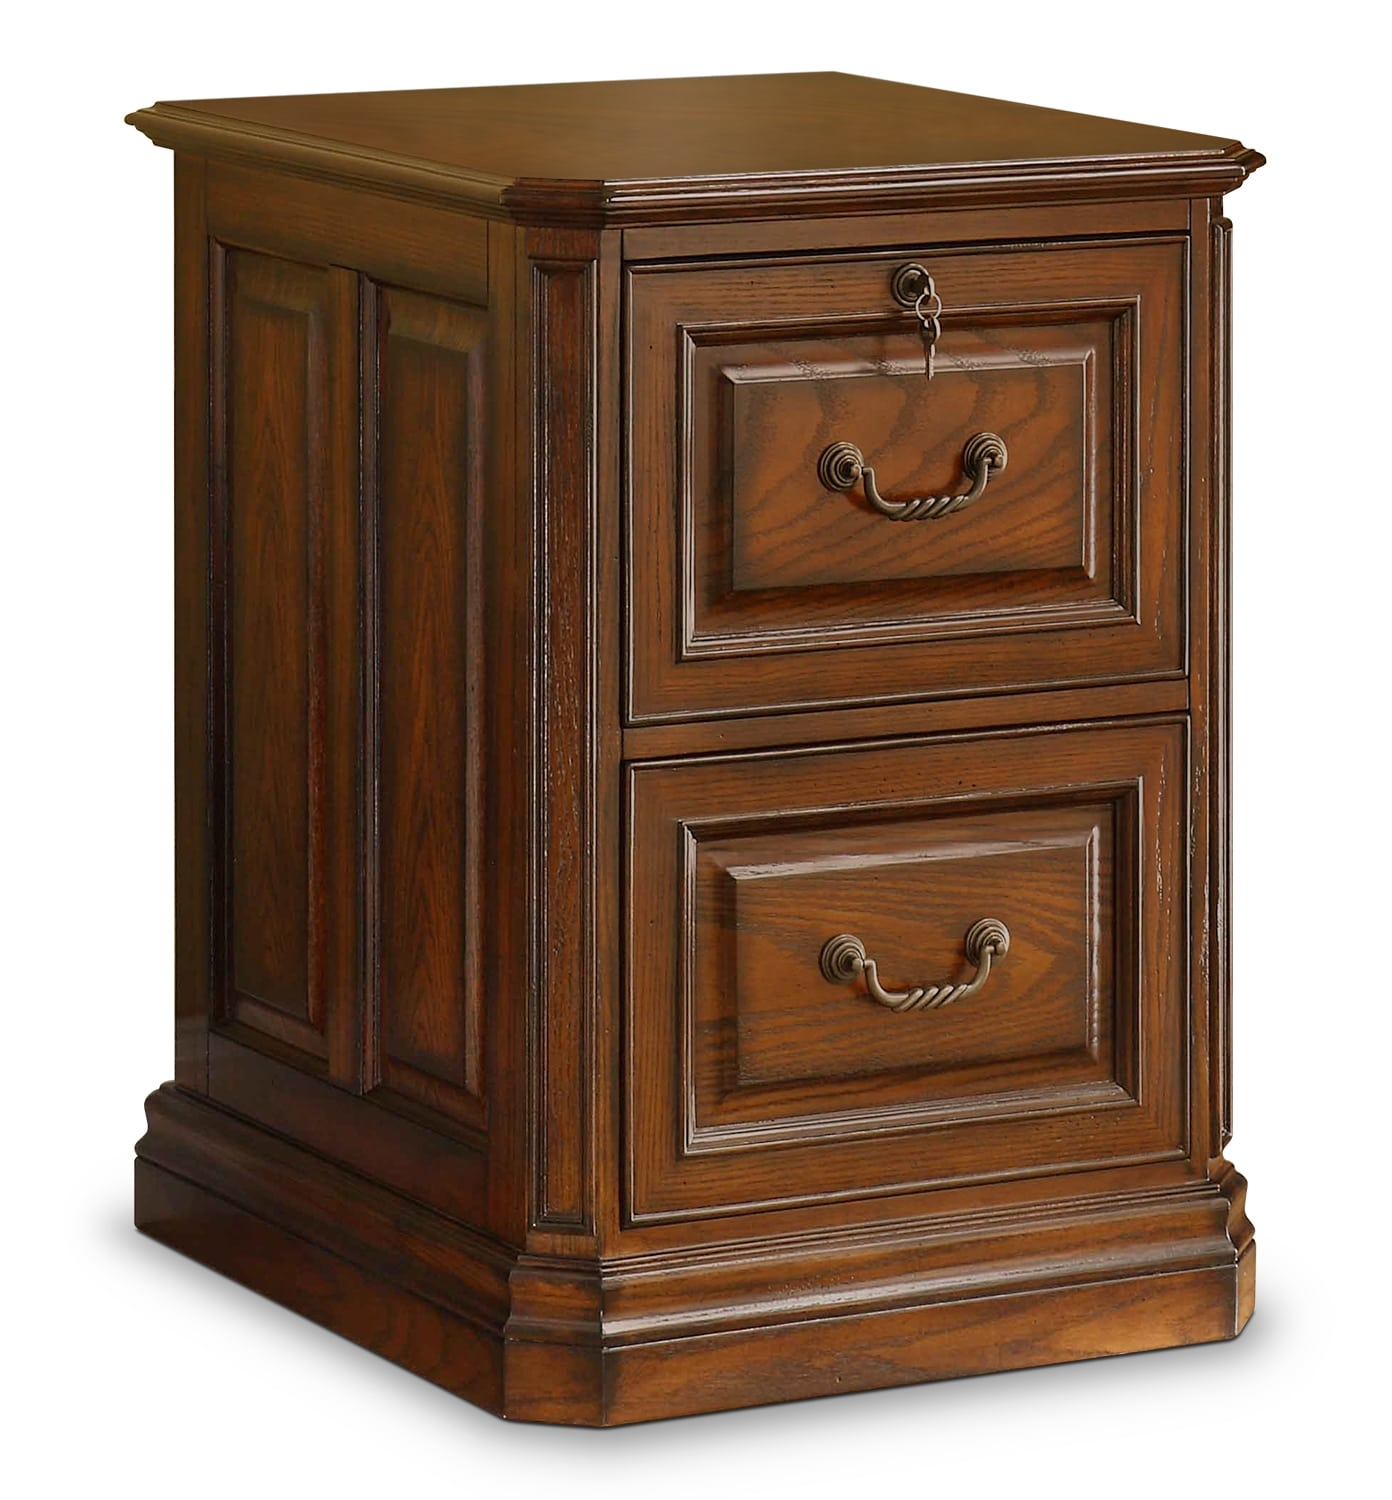 Home Office Furniture - Johanne 2-Drawer File Cabinet - Chocolate Oak